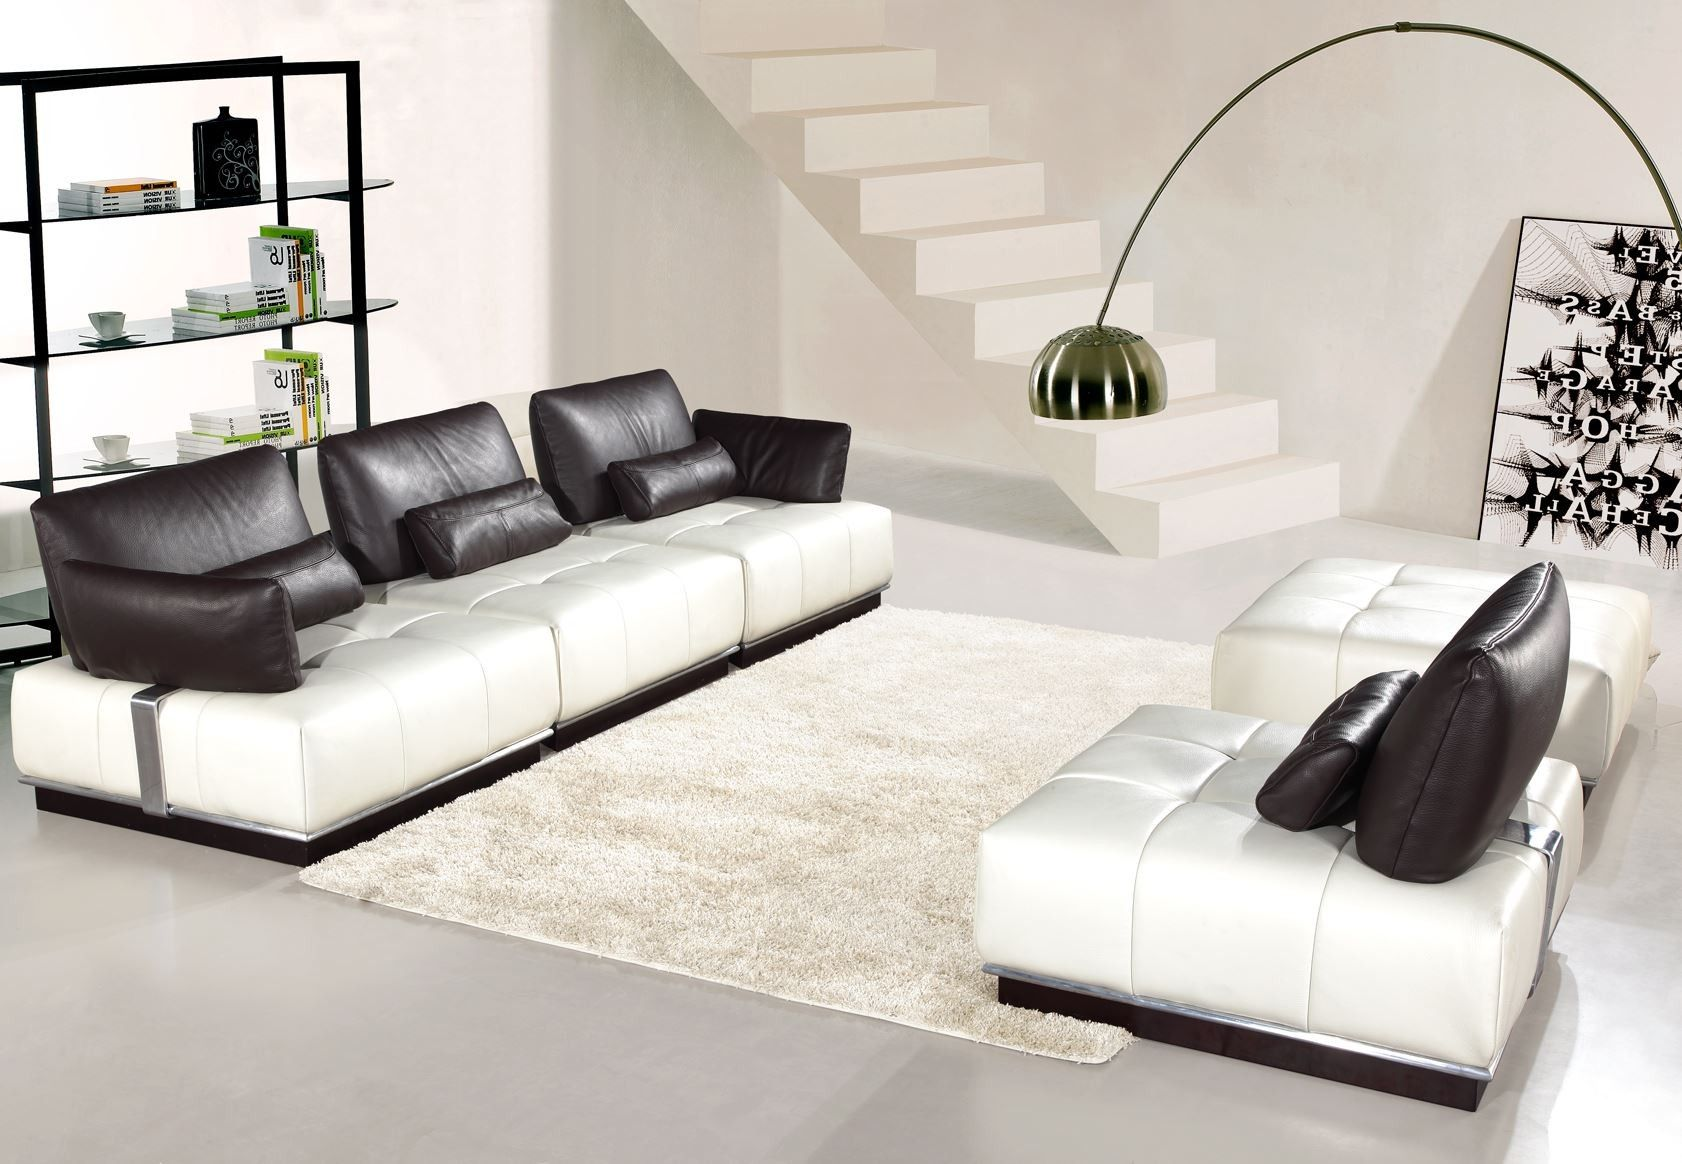 Placing The Elegant Modular Leather Sofa Uk S3net Sectional Sofas